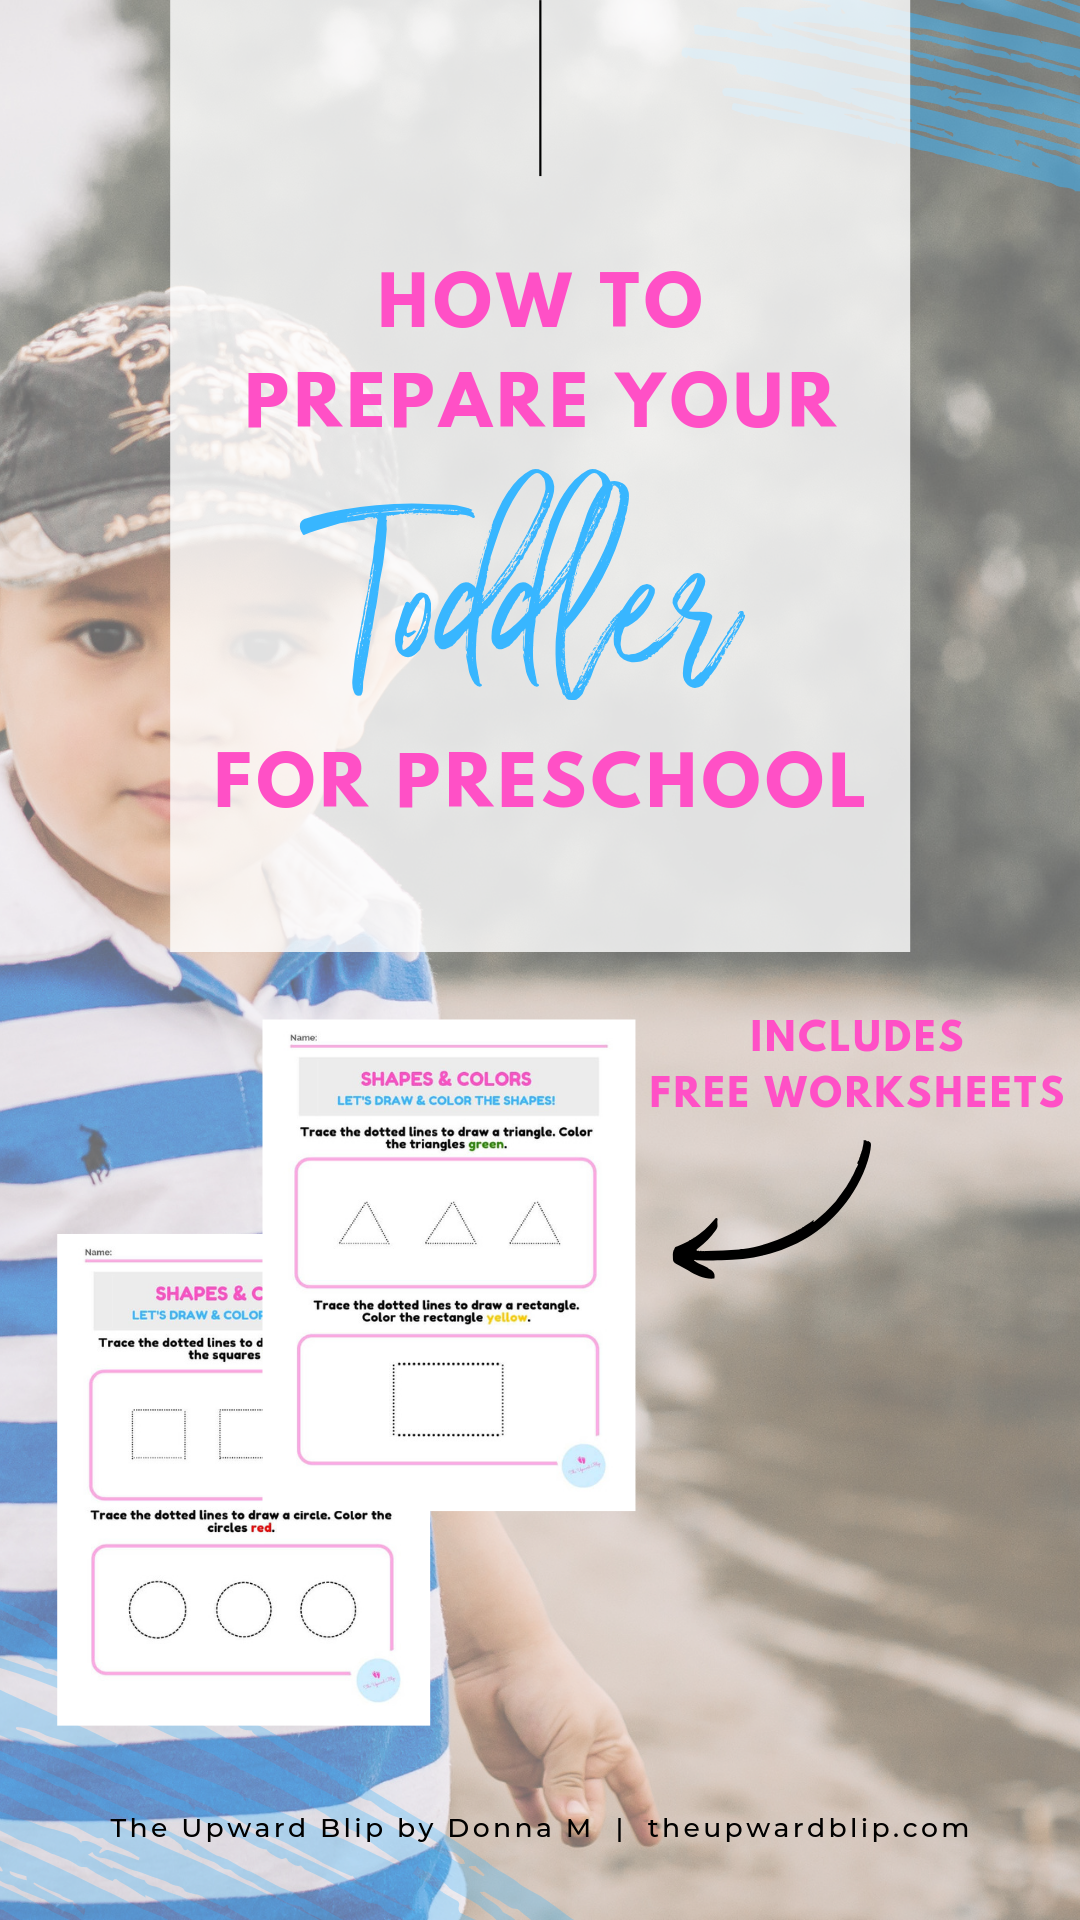 Starting Preschool How To Prepare Your Toddler